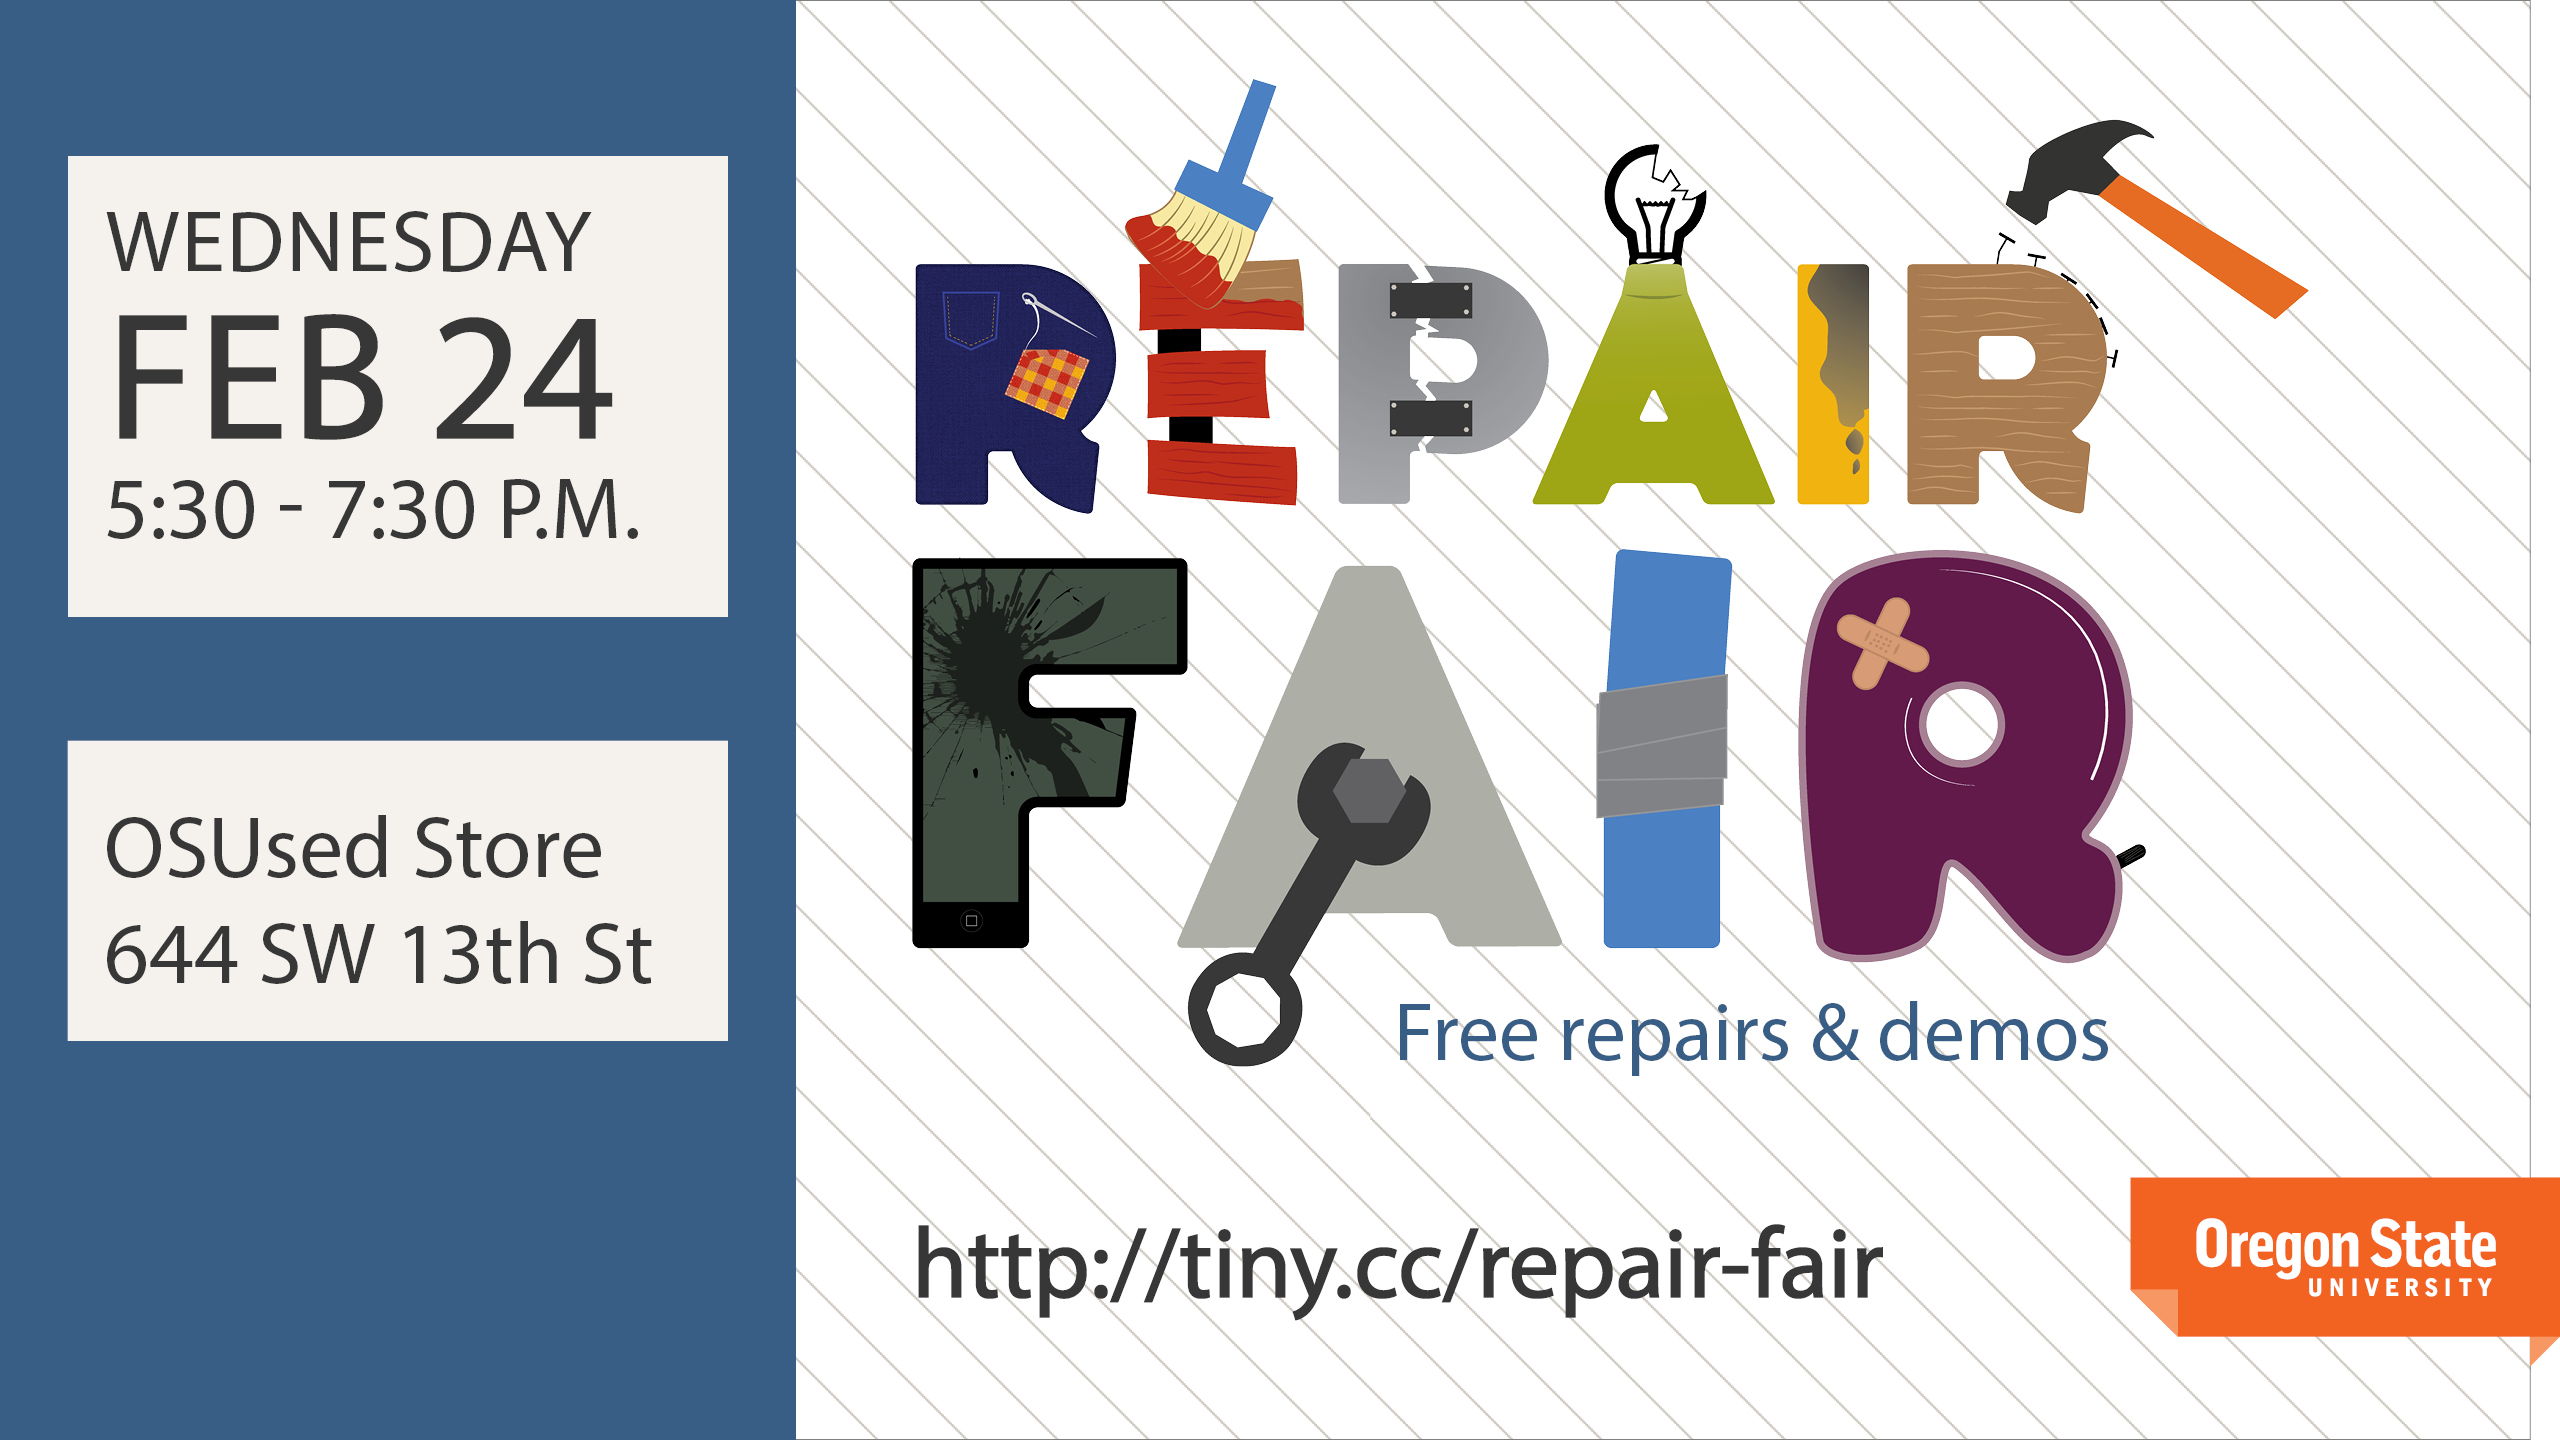 The Repair Fair is on Wednesday, Feb. 24 from 5:30 - 7:30 PM